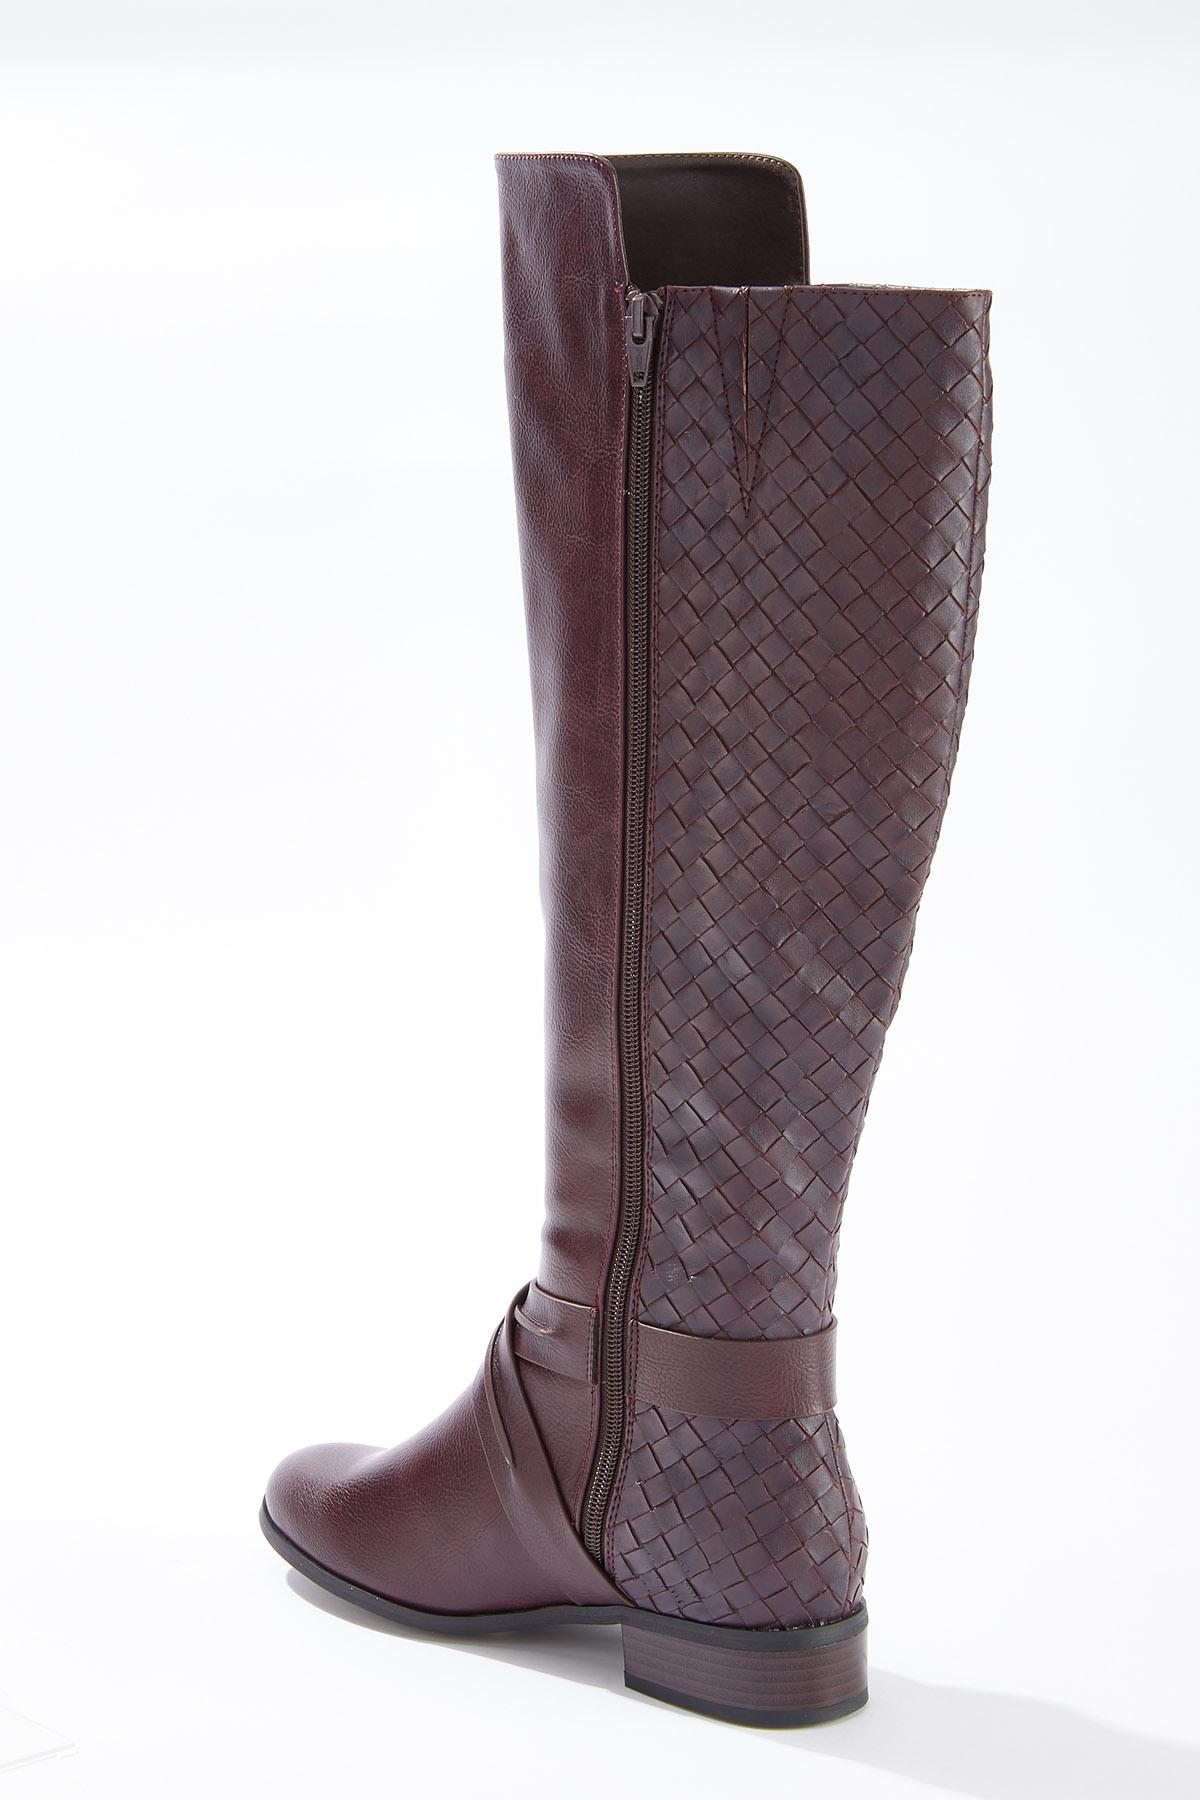 Woven Effect Riding Boots (Item #44713756)